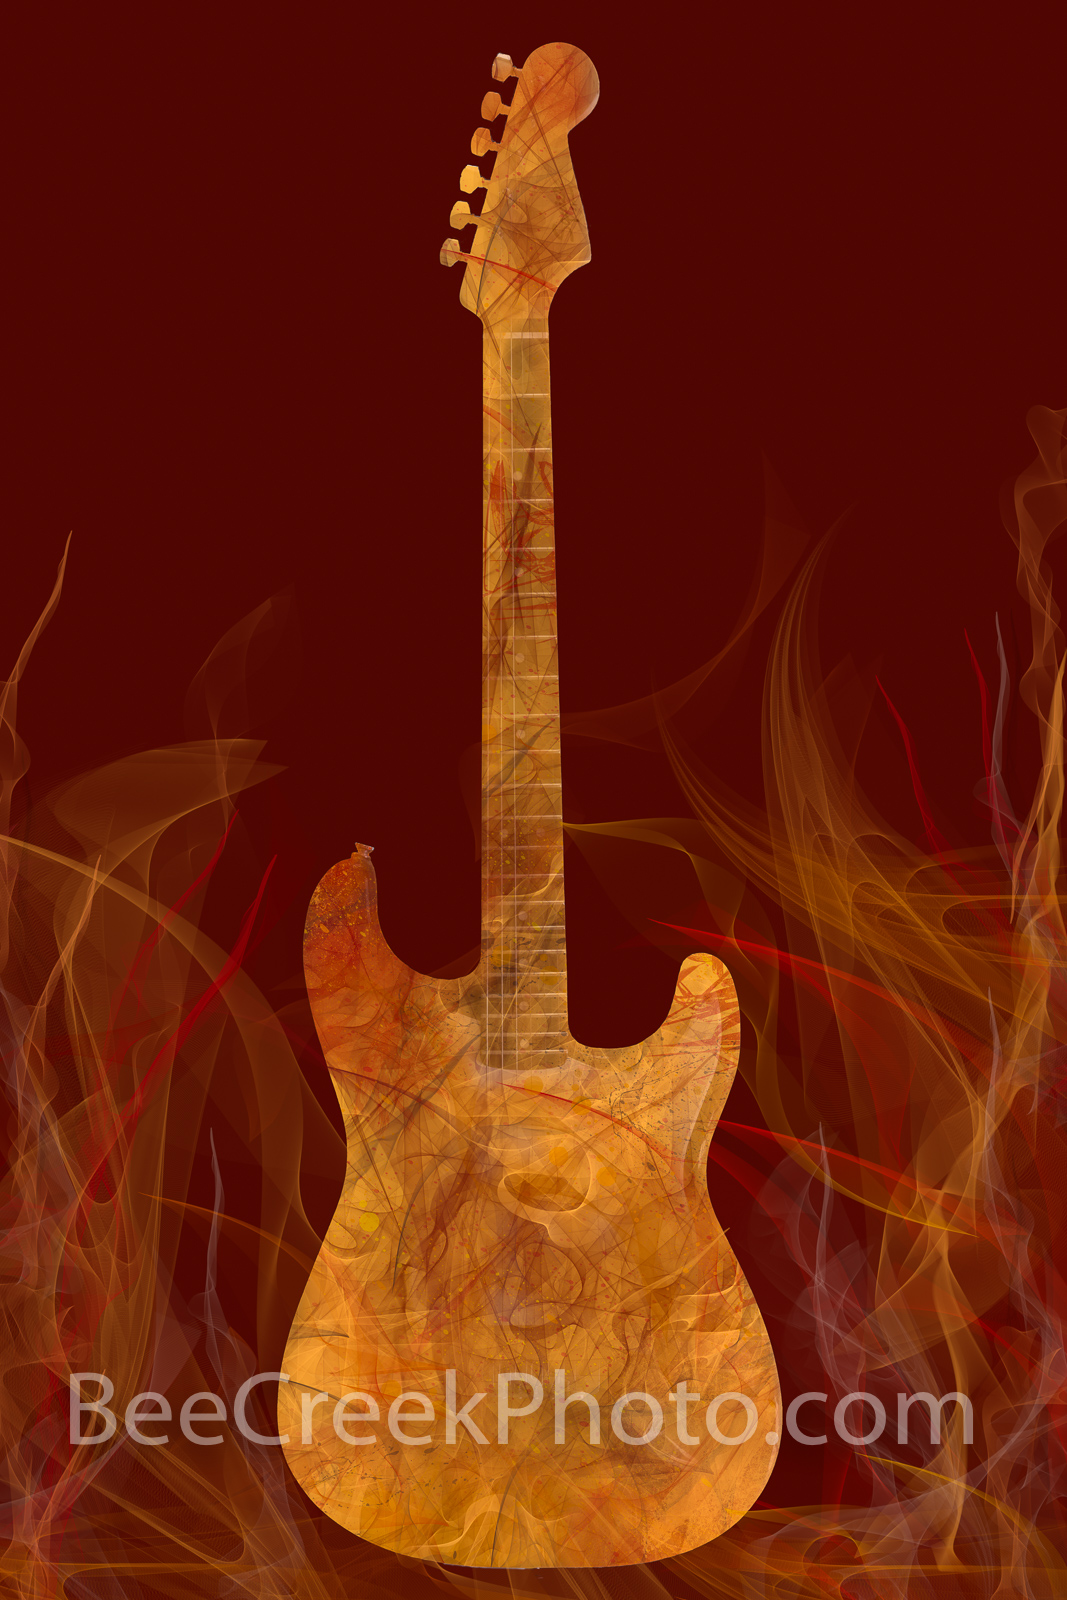 Fiery Fender Abstract Vertical - Fender guitar on fire abstract art. This abstract digital painting depicts a fender guitar on...